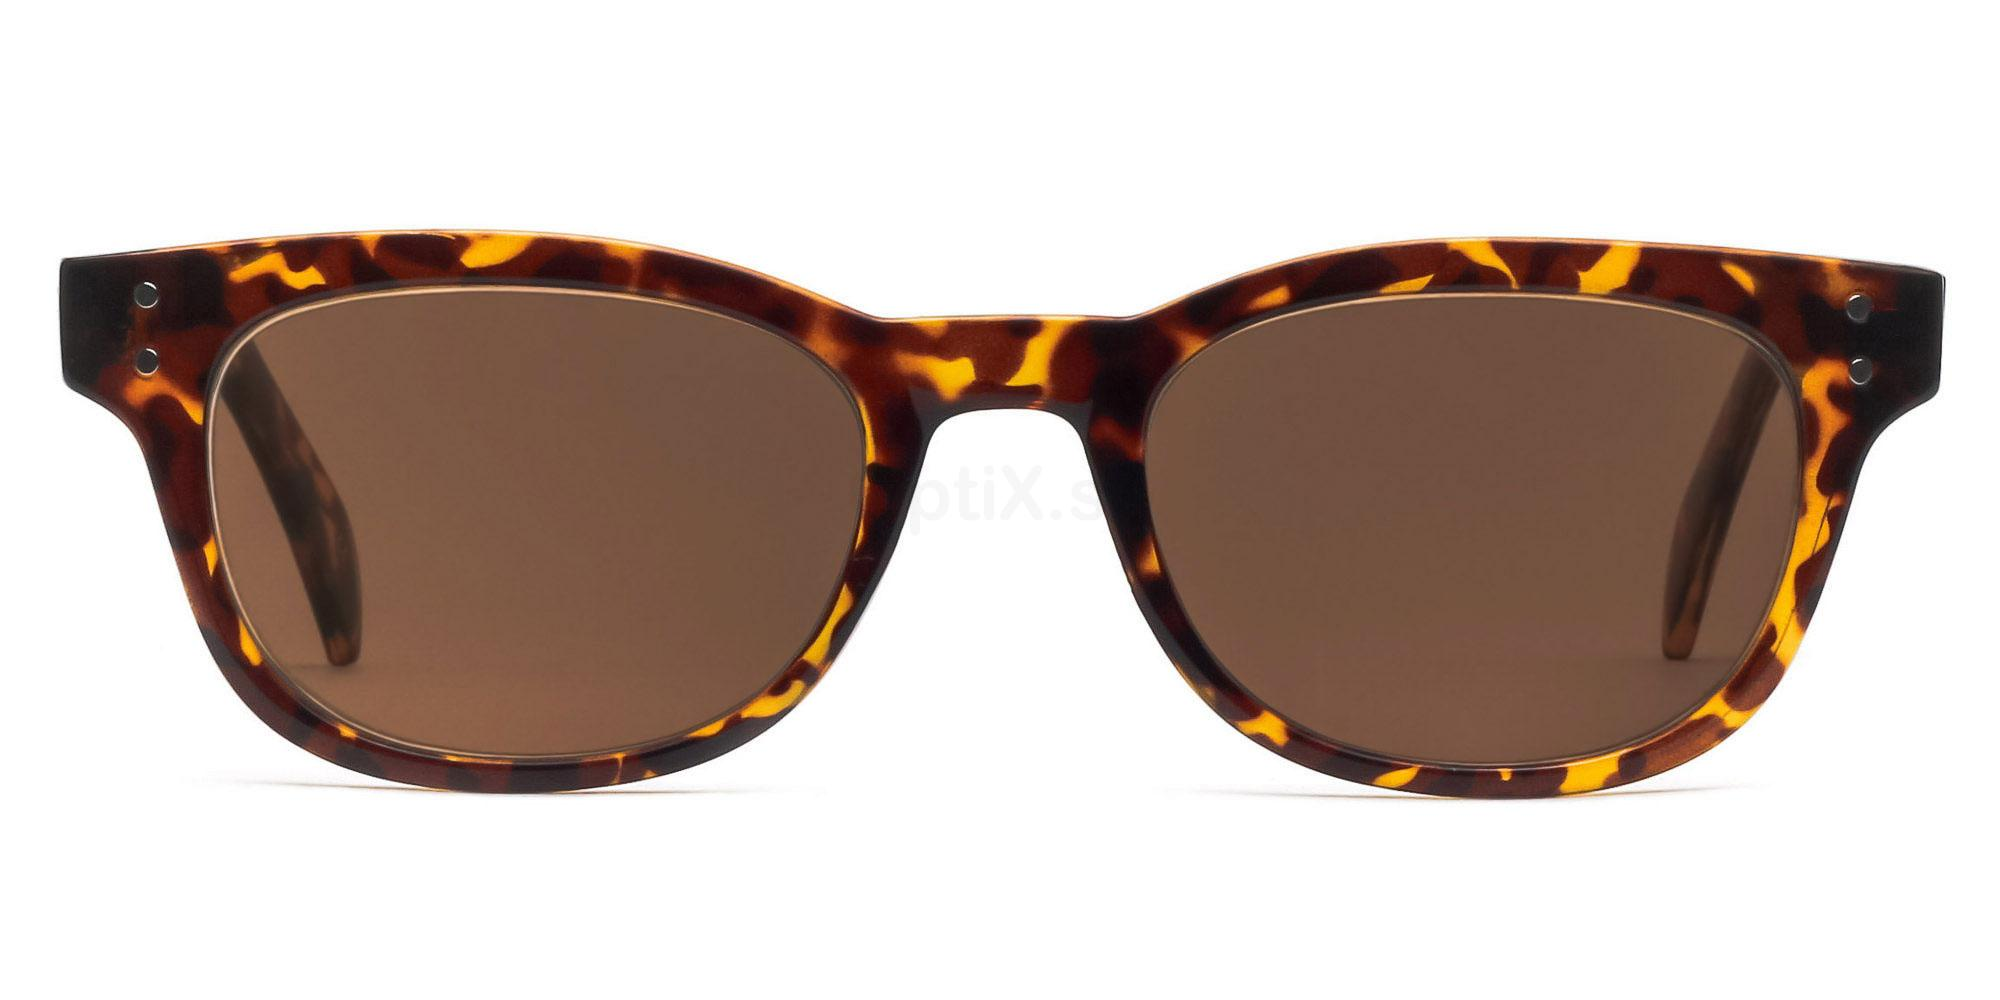 C04 Dark Brown P2249 Havana (Sunglasses) Sunglasses, Savannah